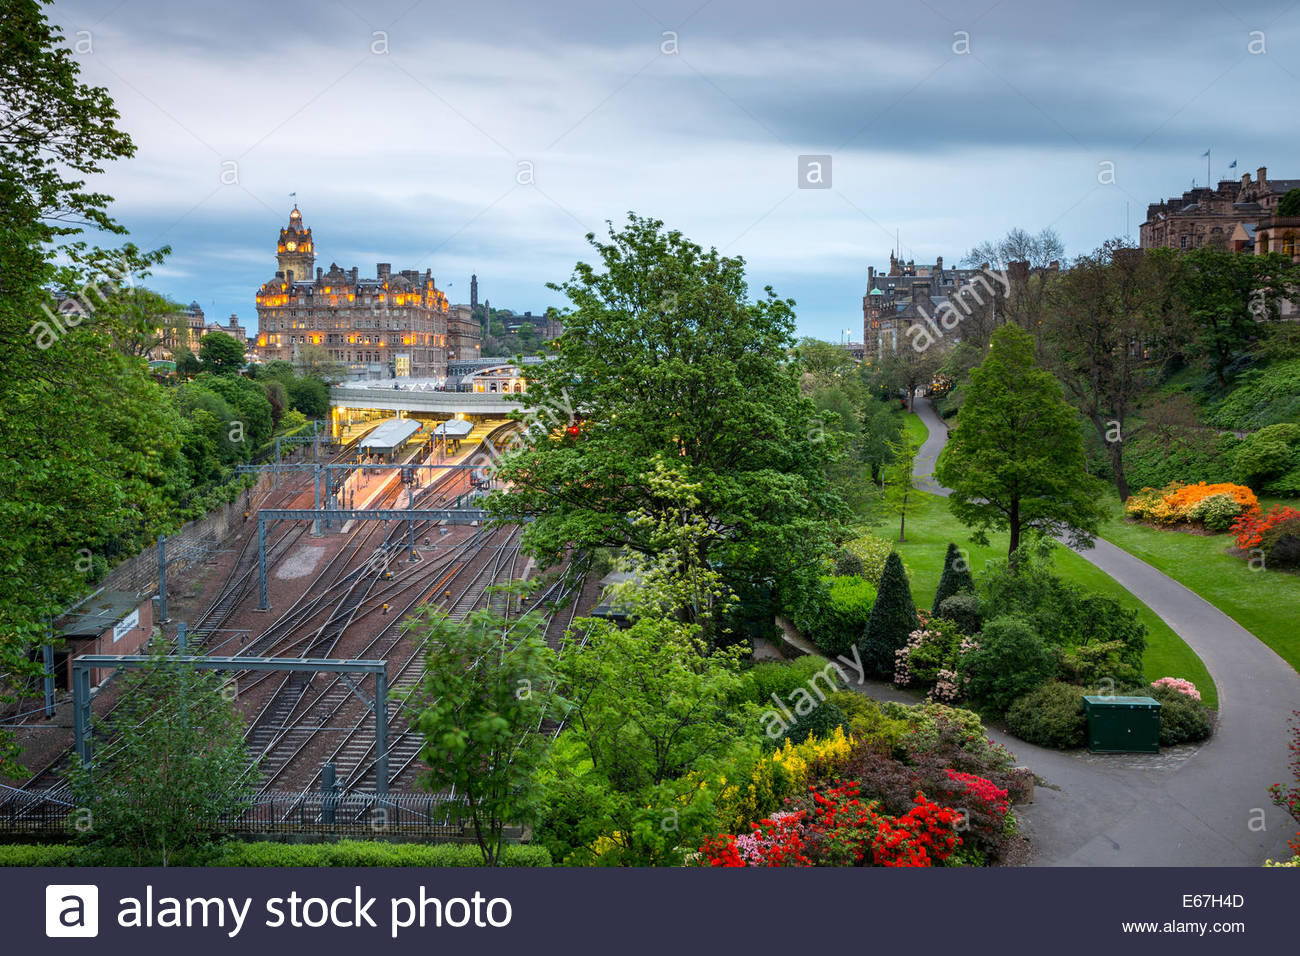 Princes Street Gardens and Waverley railway station, Edinburgh - Stock Image